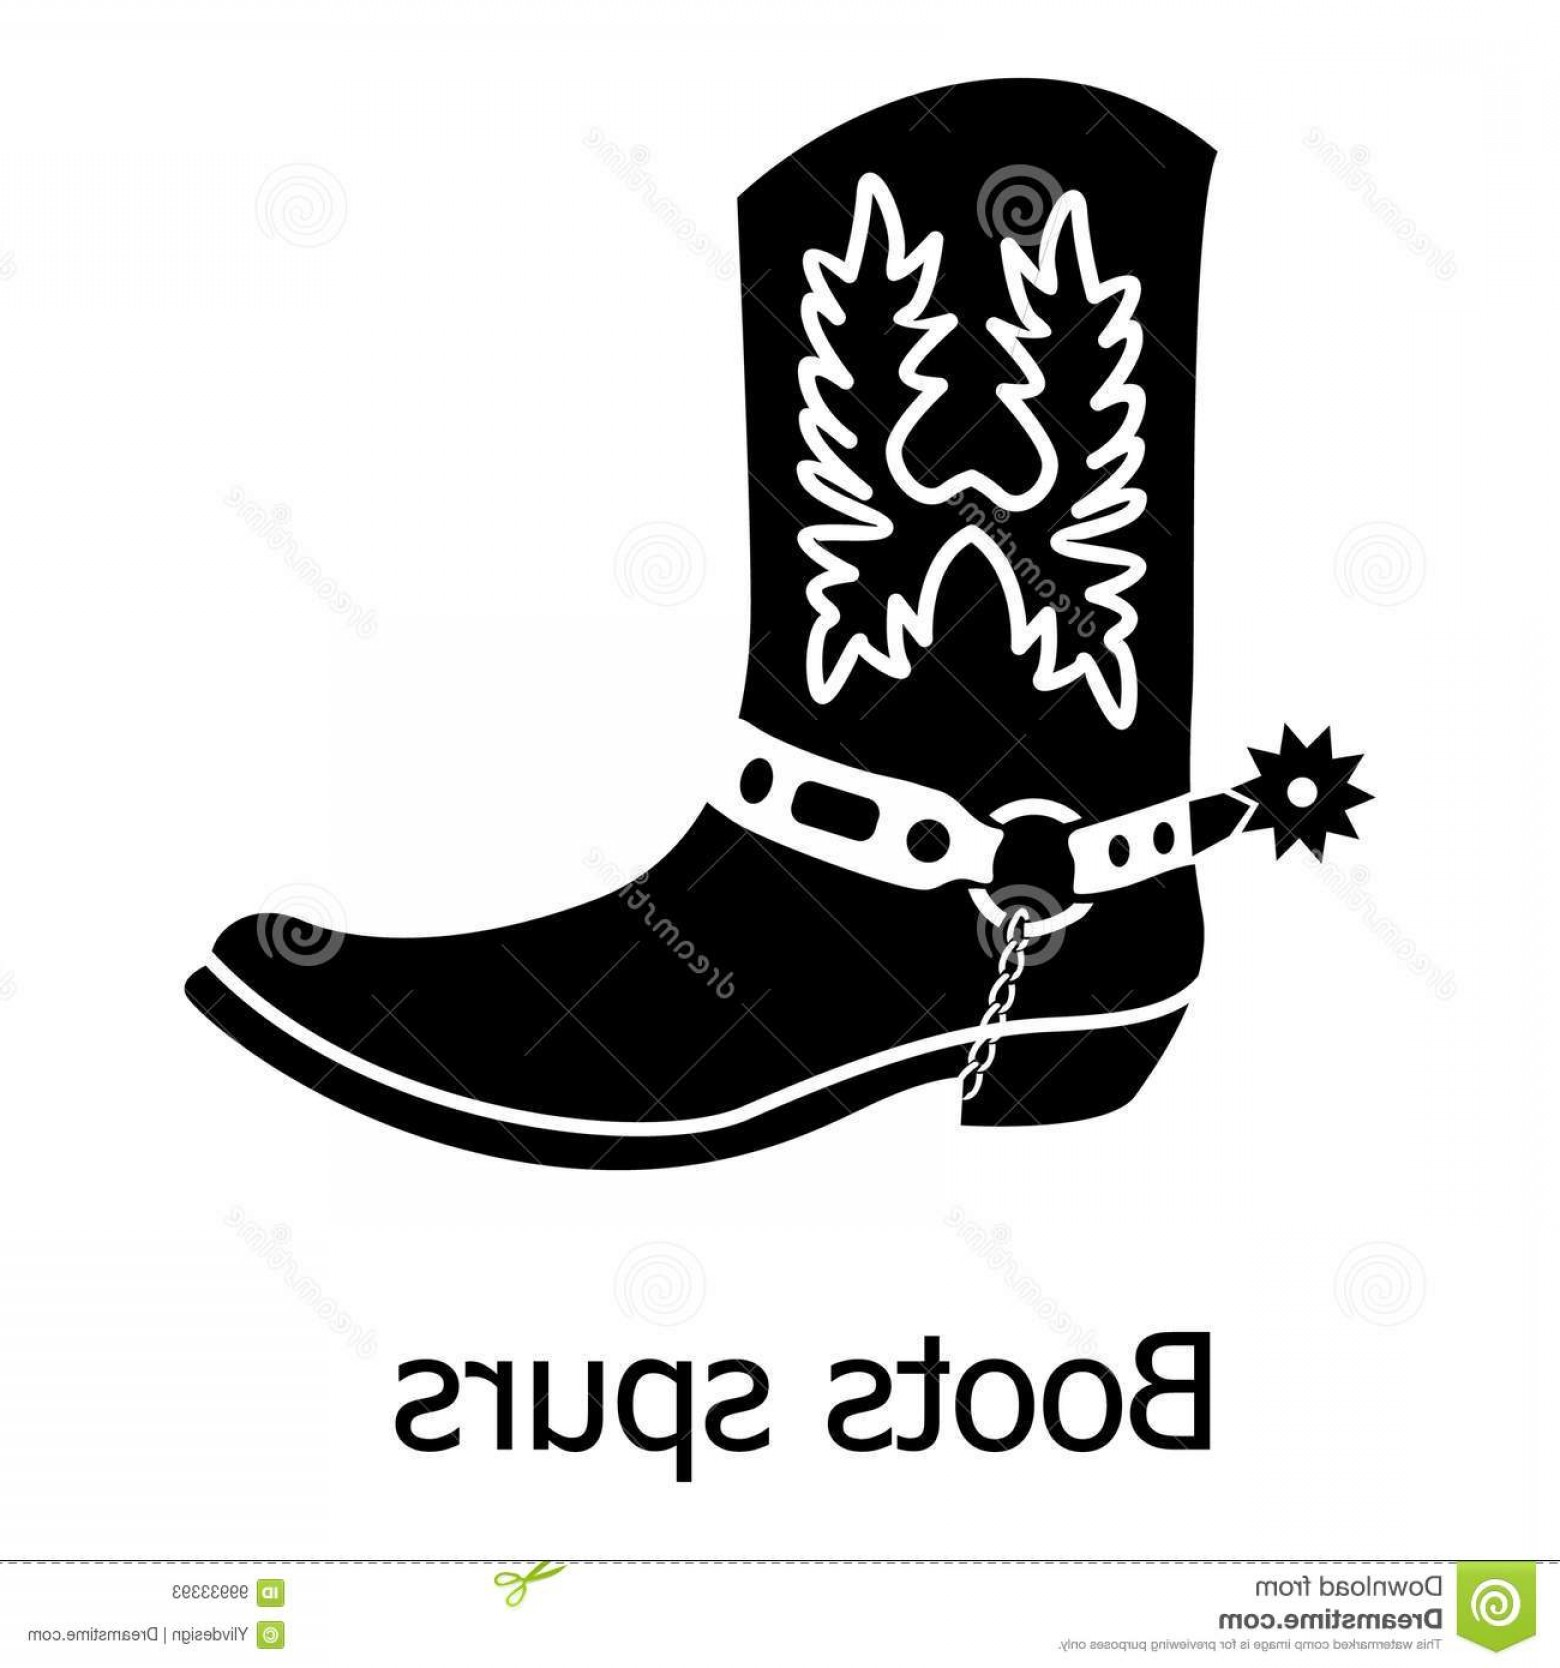 Spurs Clip Art Vector: Boot Spurs Icon Simple Illustration Boot Spurs Vector Icon Web Boot Spurs Icon Simple Black Style Image